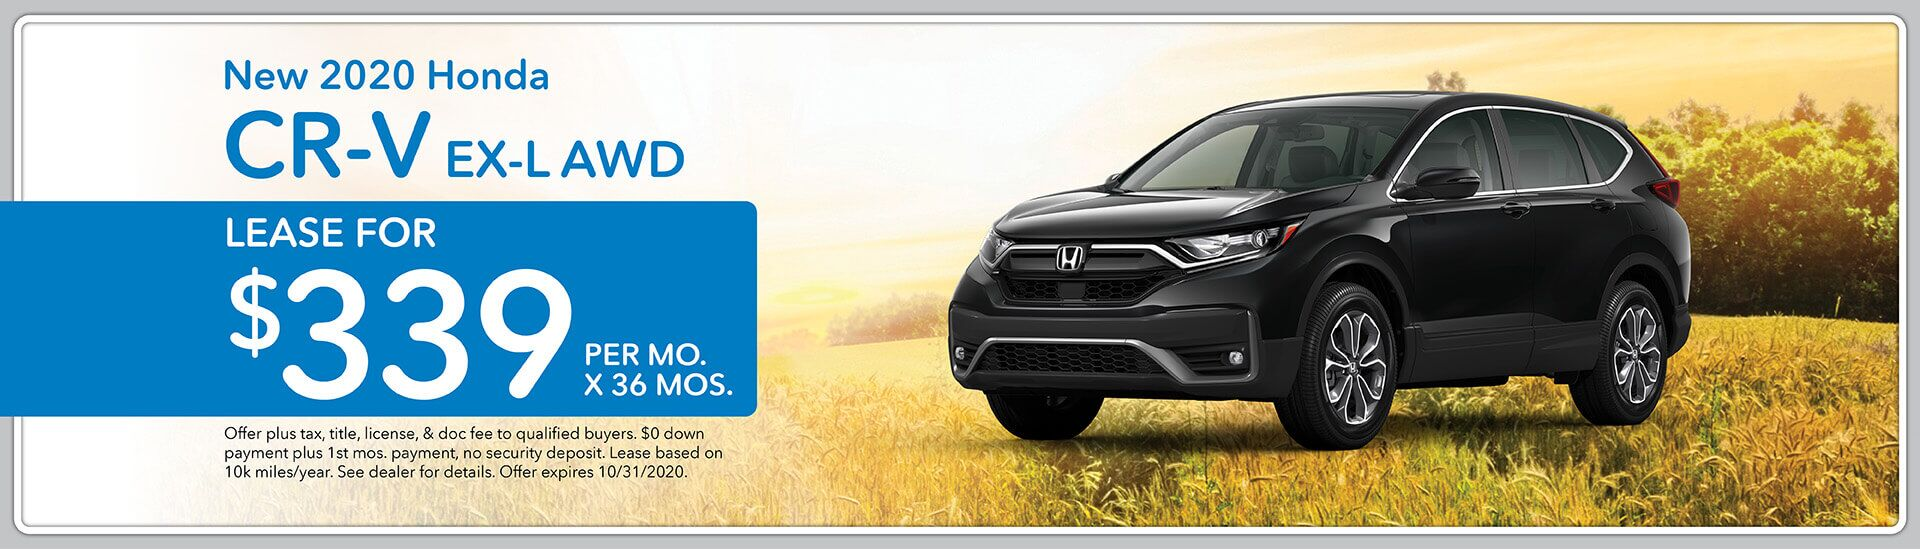 2020 Honda CR-V EX-L AWD, Lease for $339/mo. for 36 mos.   Green Bay, WI